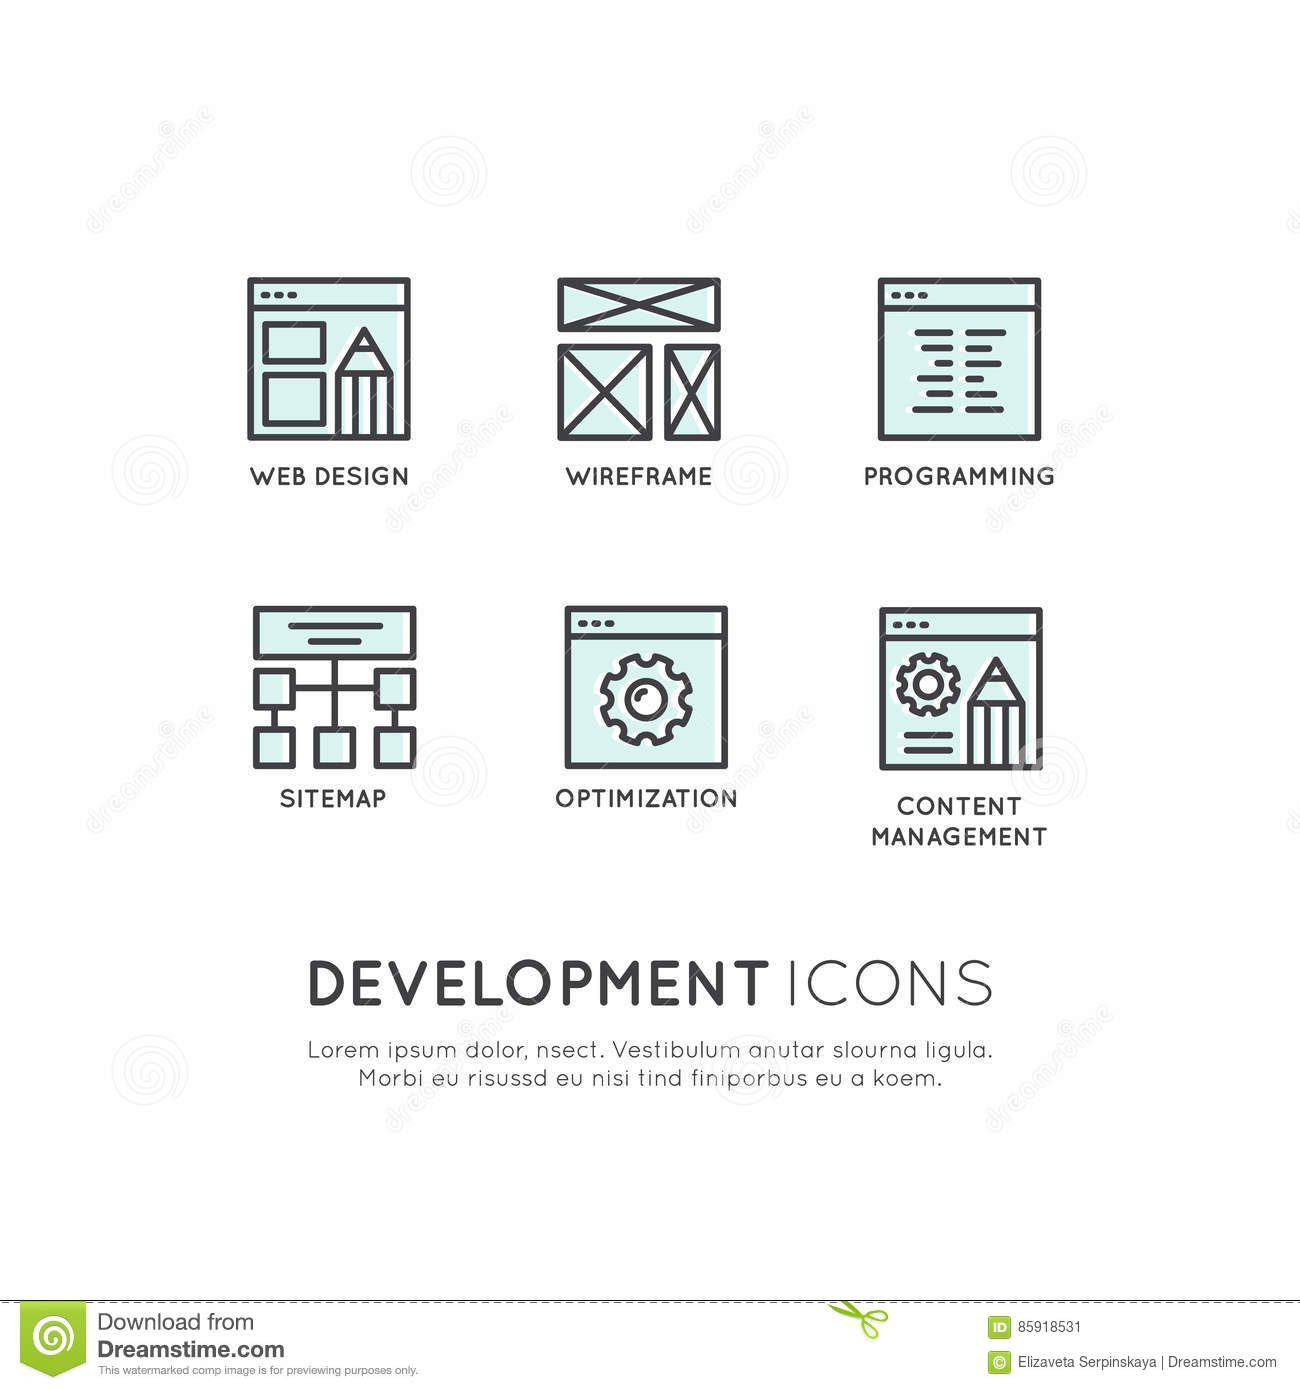 Mobile And App Development Tools And Processes, Design And